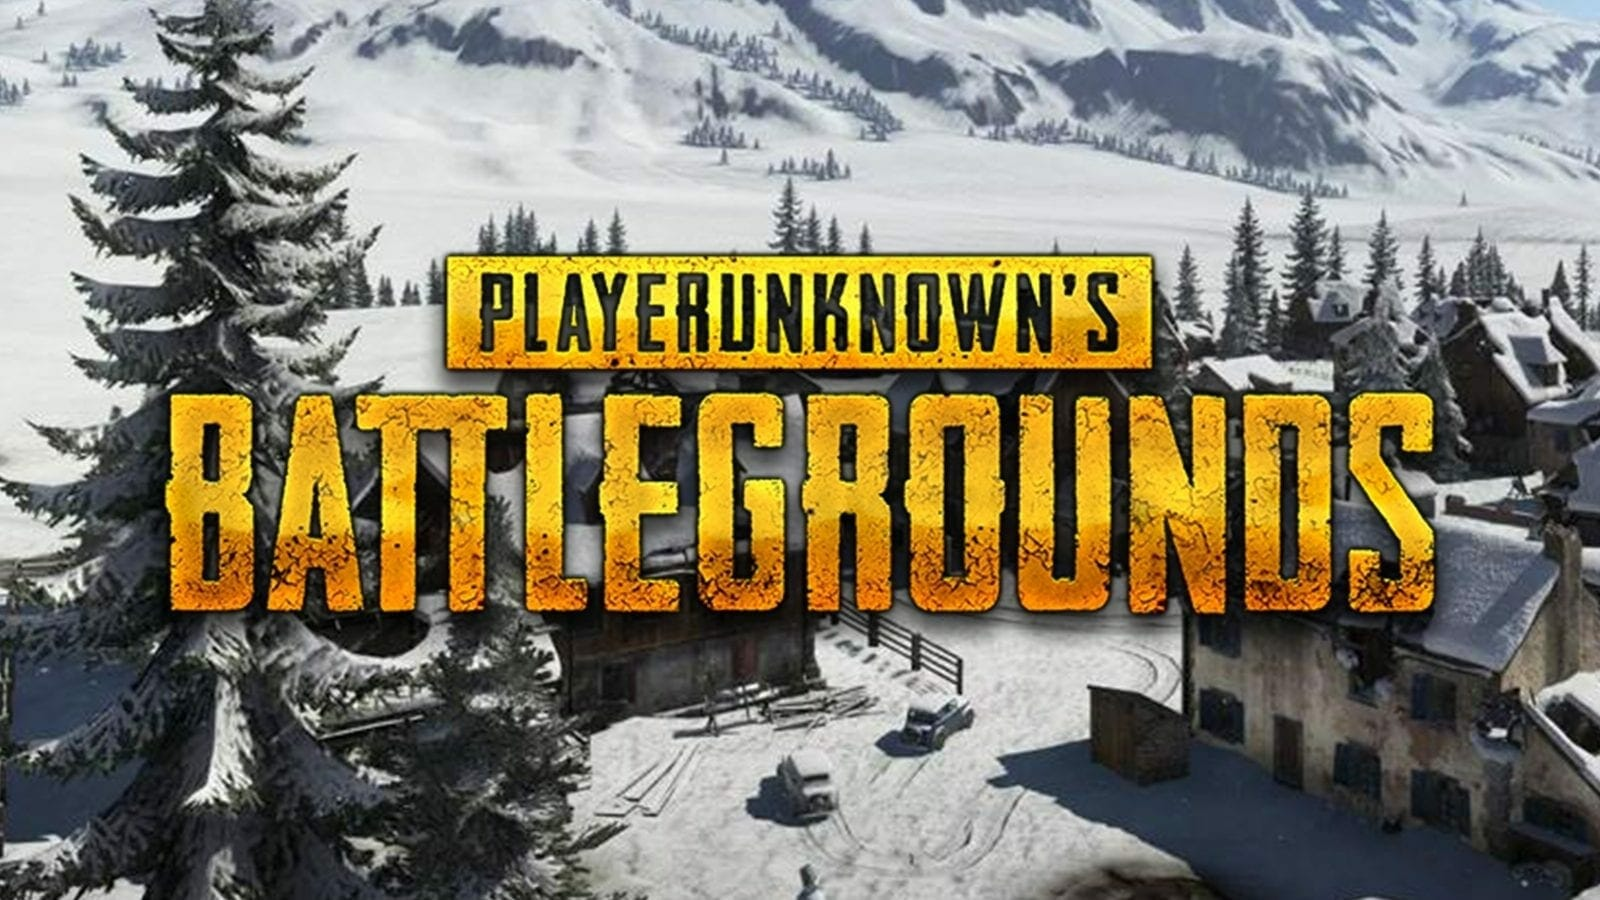 Download PUBG Mobile 0105 APK For Android Devices Patch Notes Released